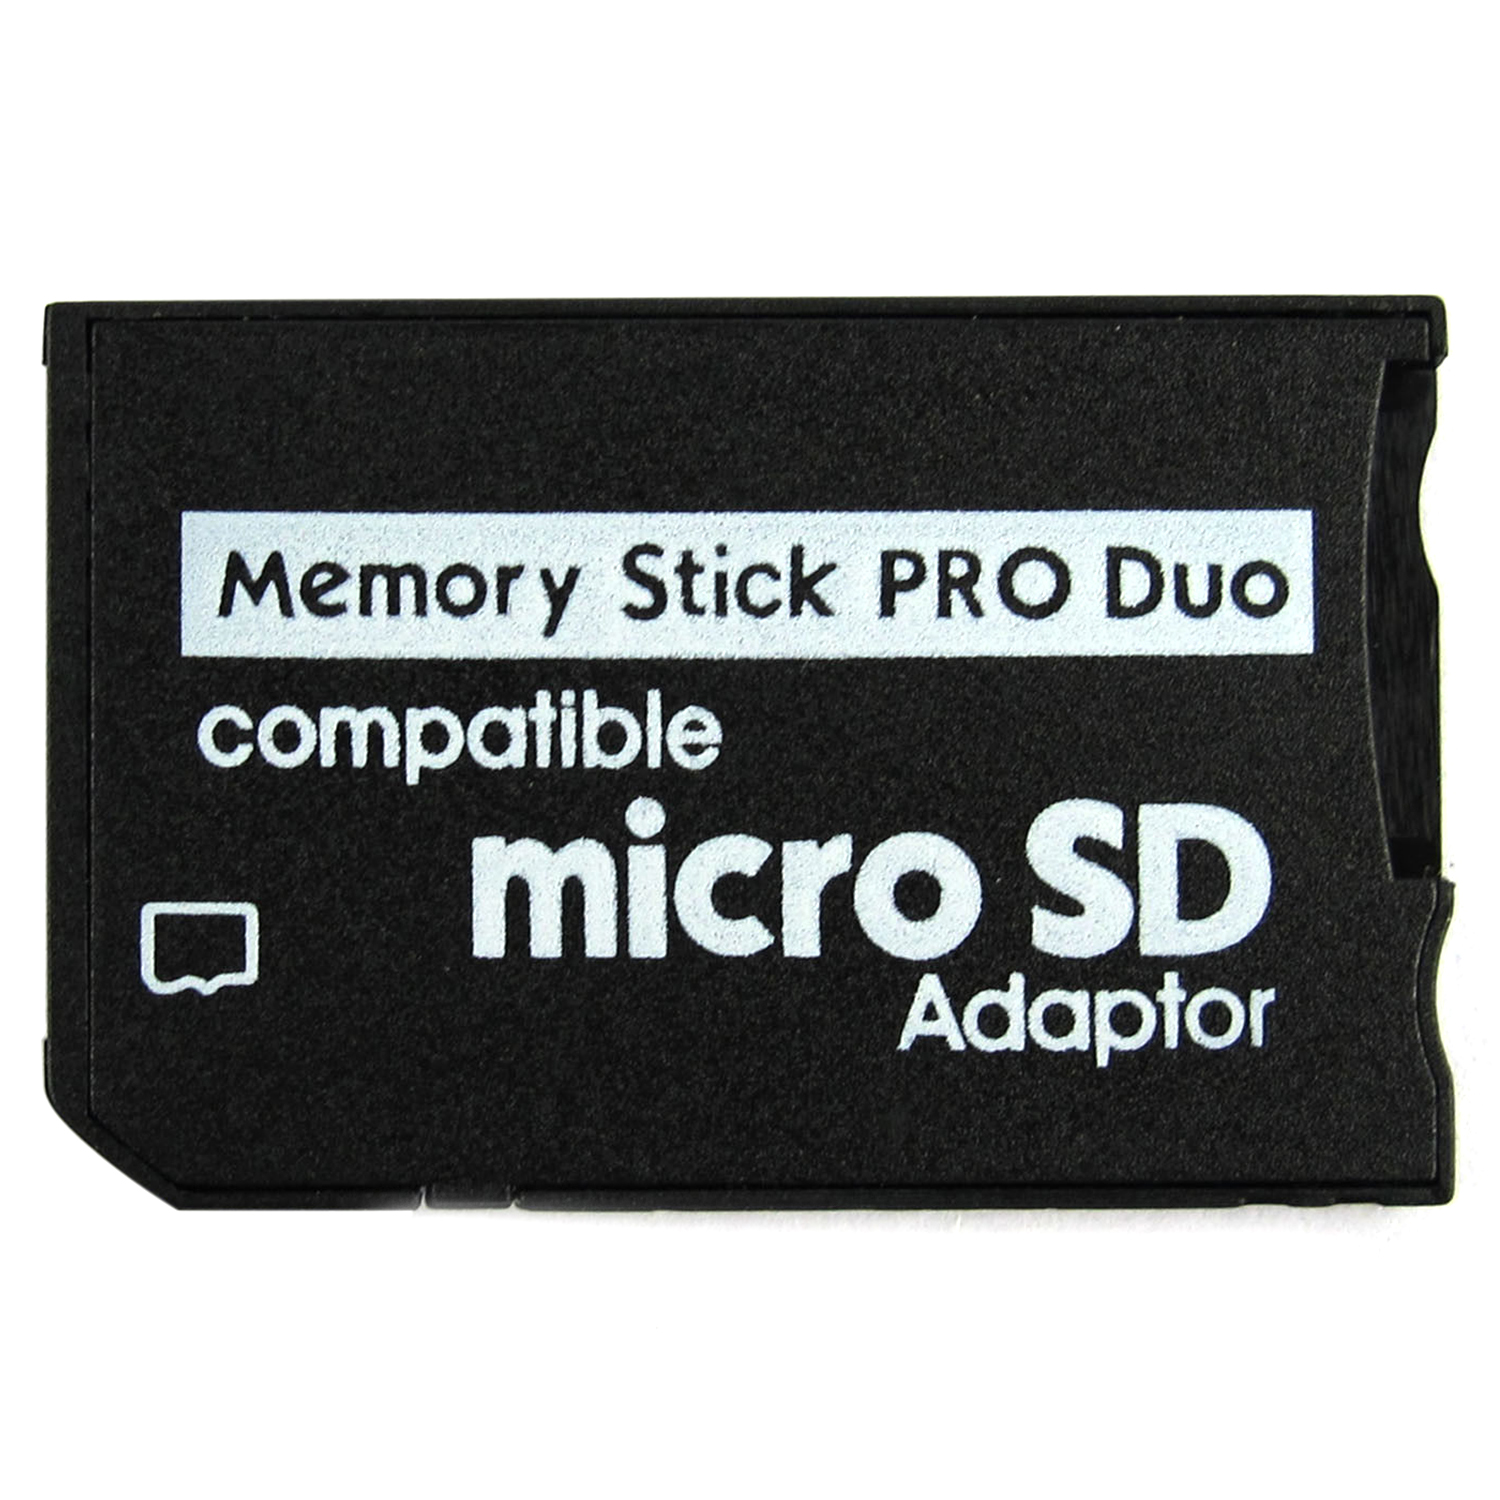 IG-Memory Stick Pro Duo Mini MicroSD TF To MS Adapter SD SDHC Card Reader For Sony & PSP Series